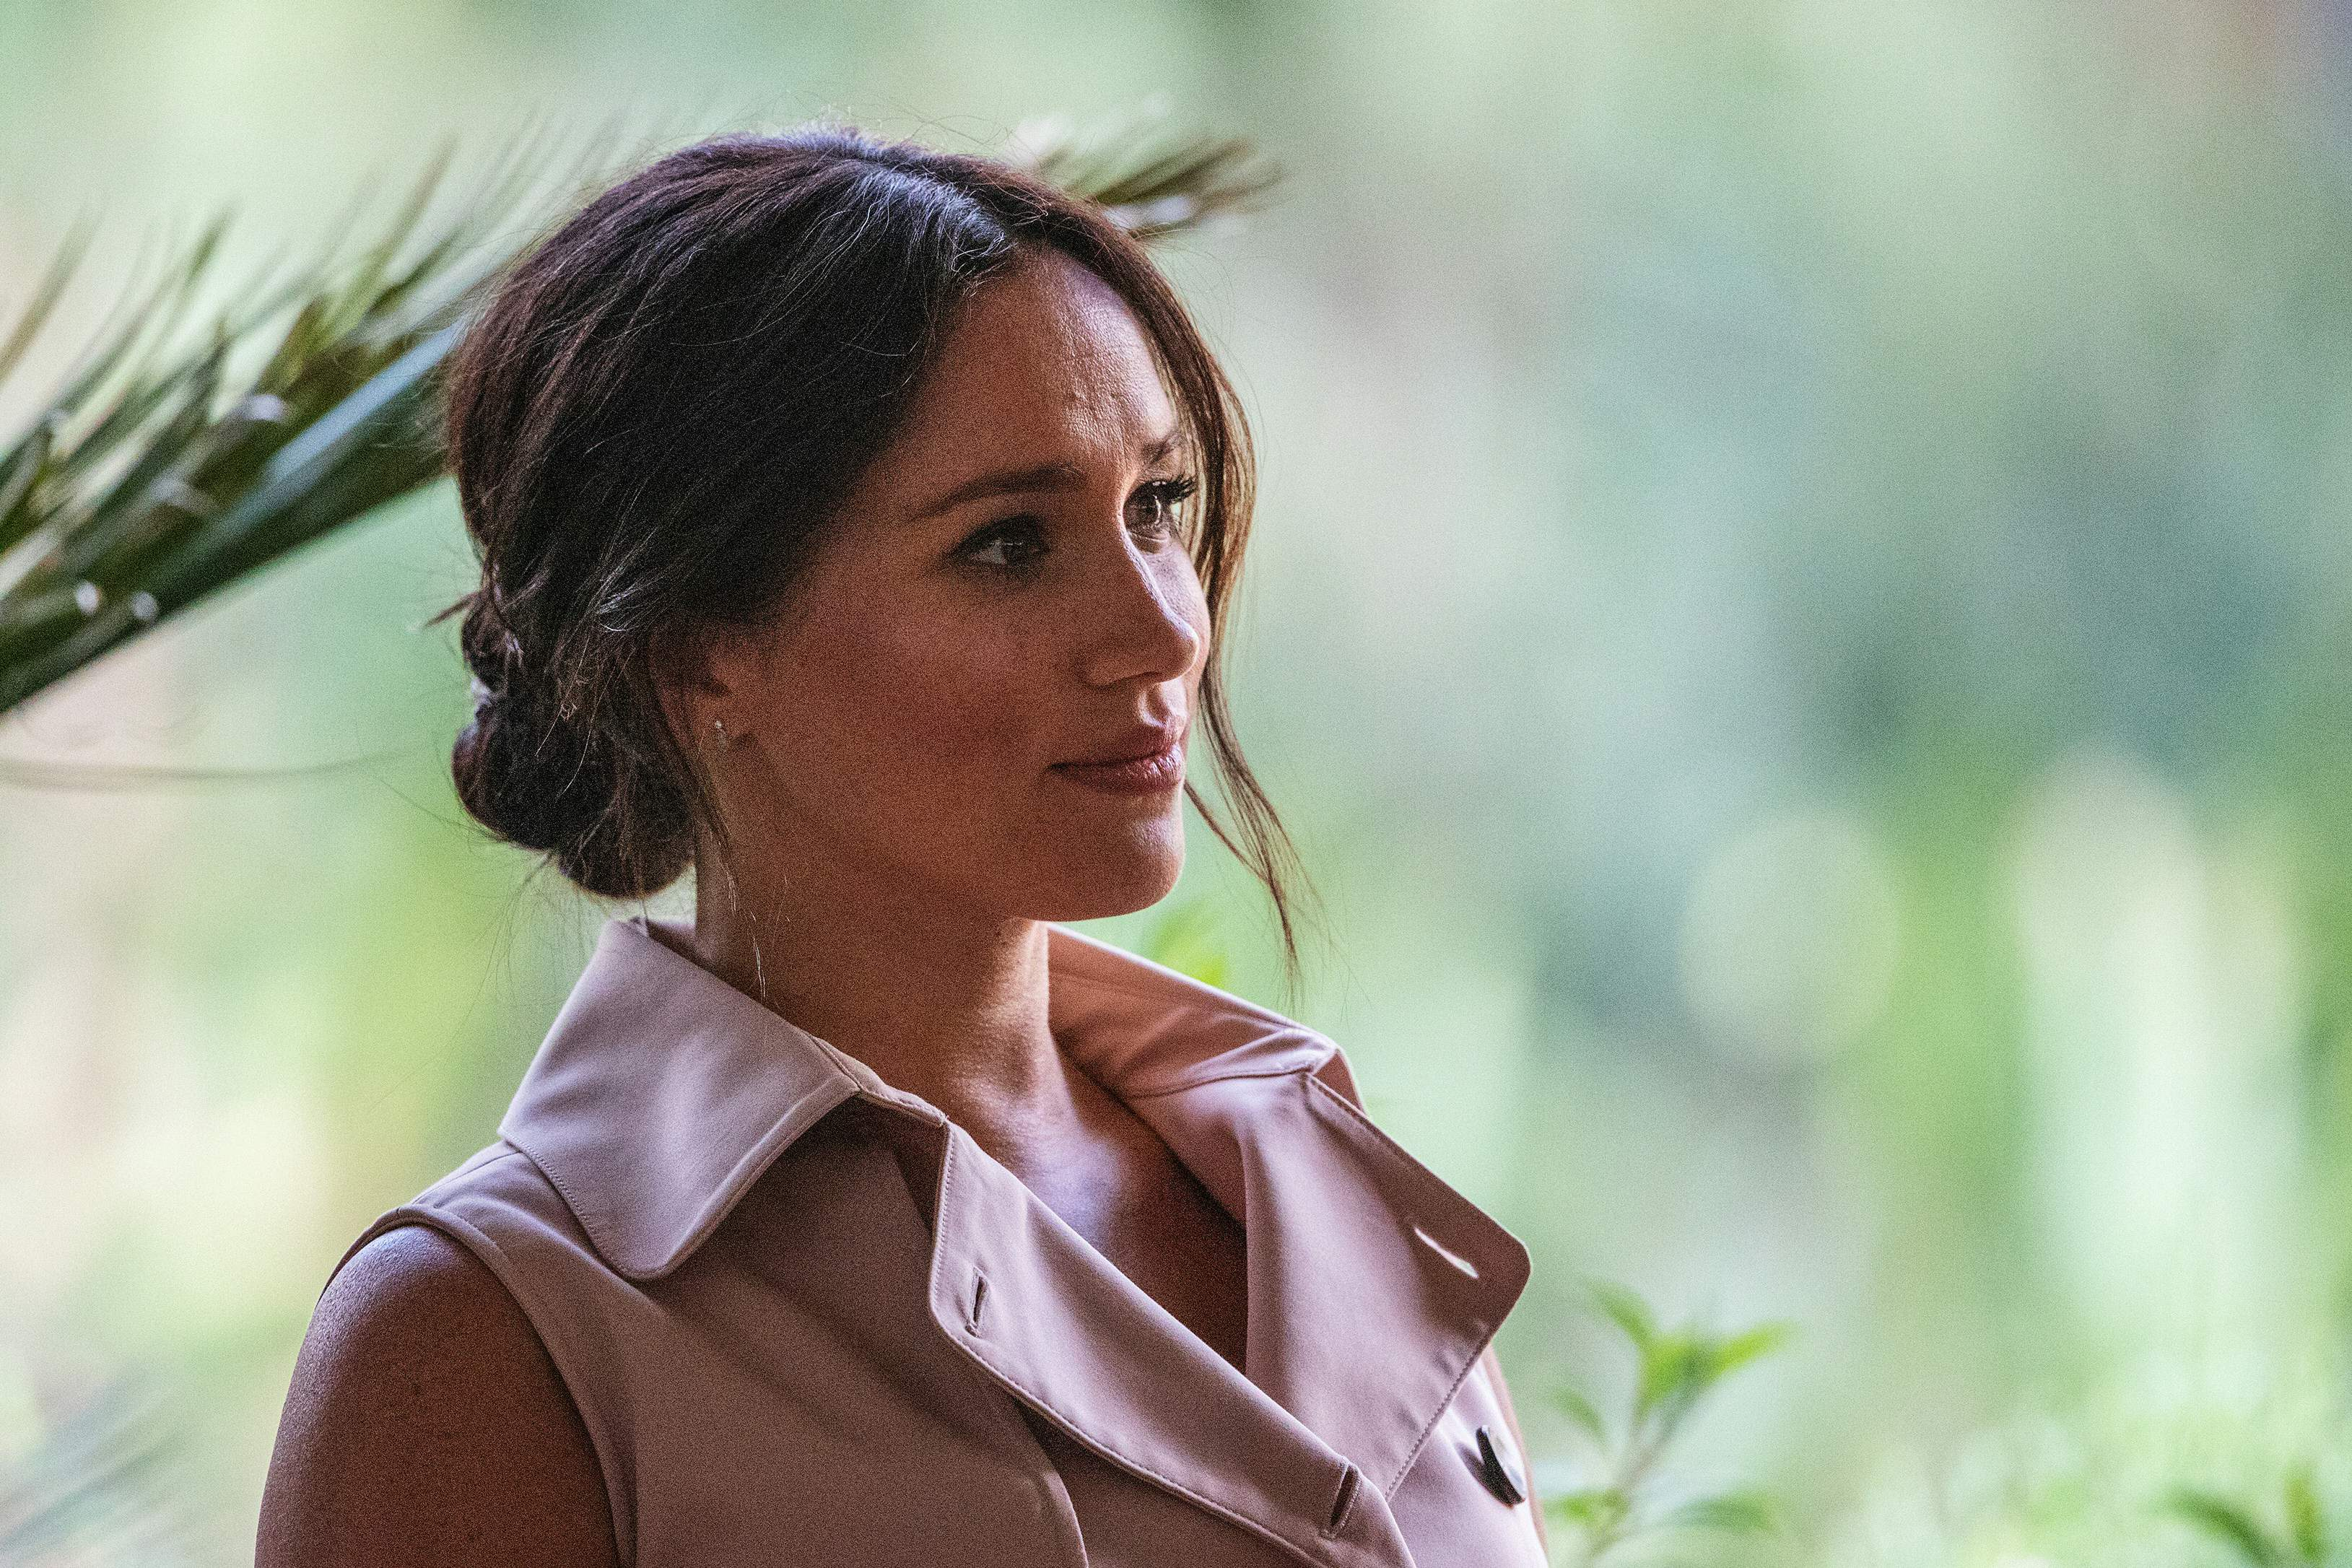 Duchess Meghan shares she had a miscarriage in July, writes about loss, need for healing